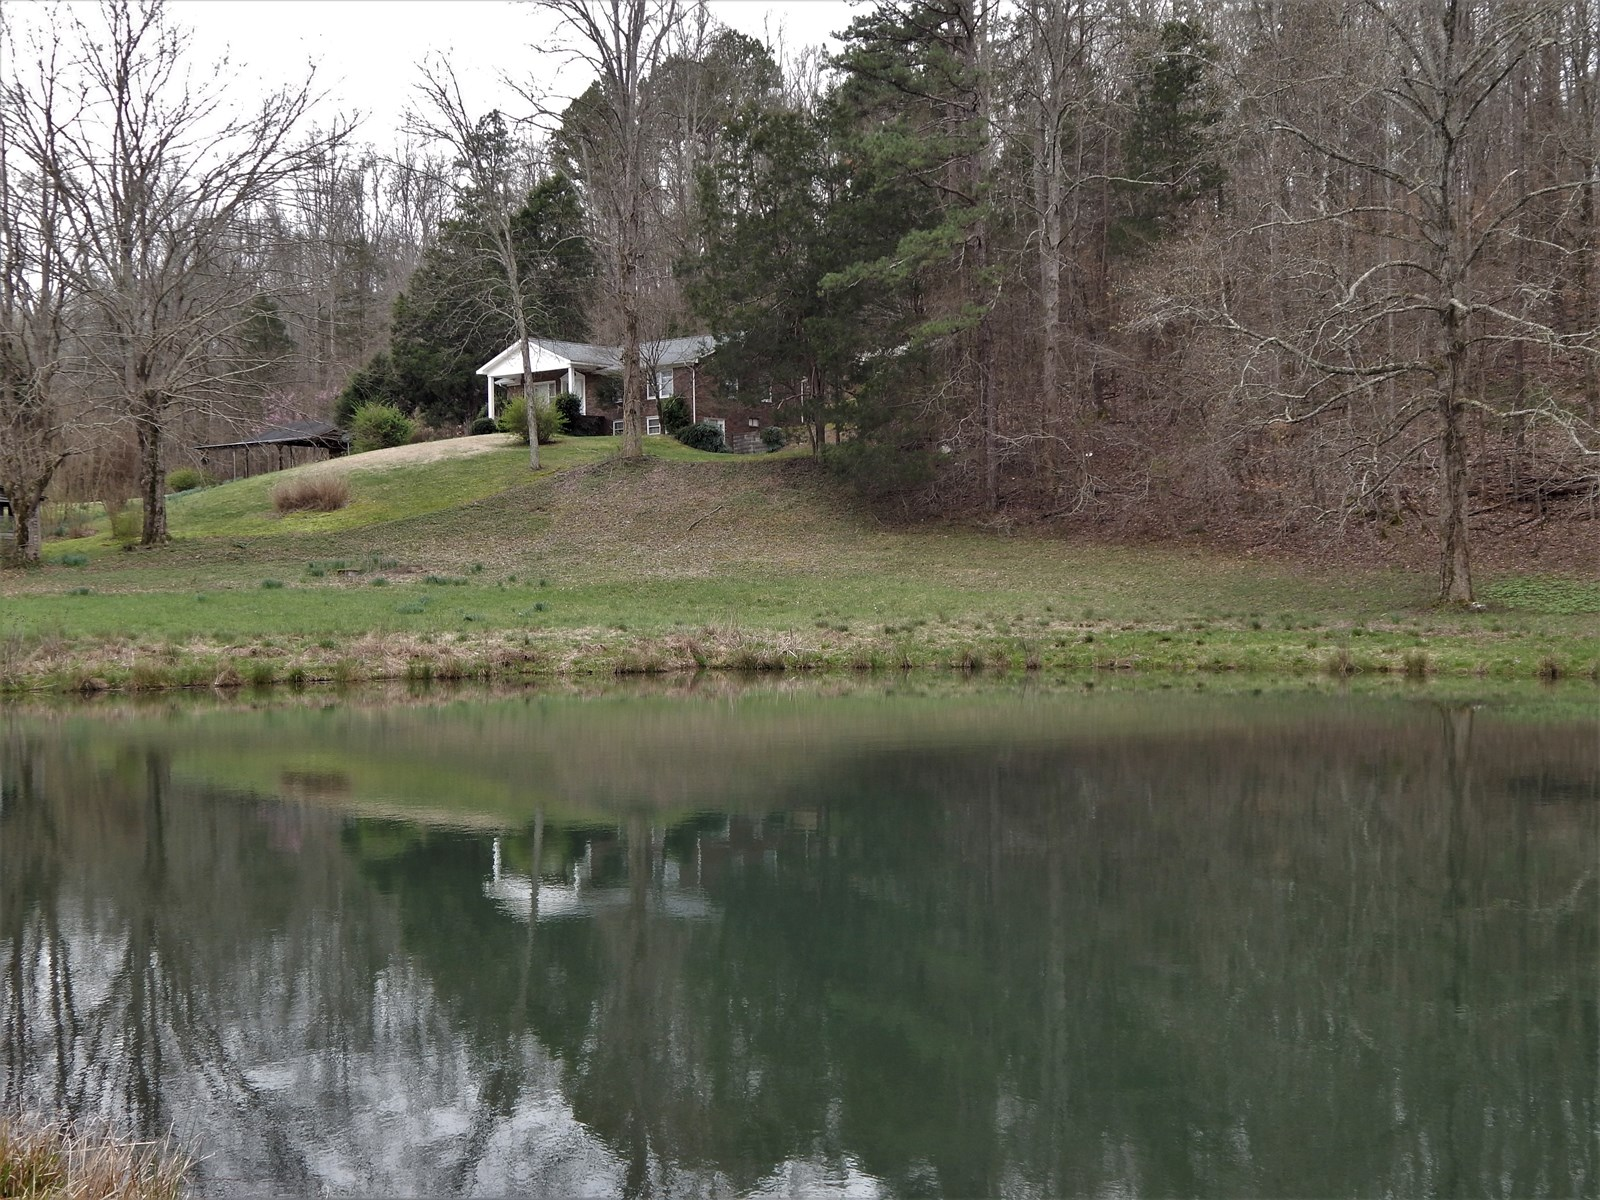 Ranch Style Brick Home For Sale on 39.4 Acres!